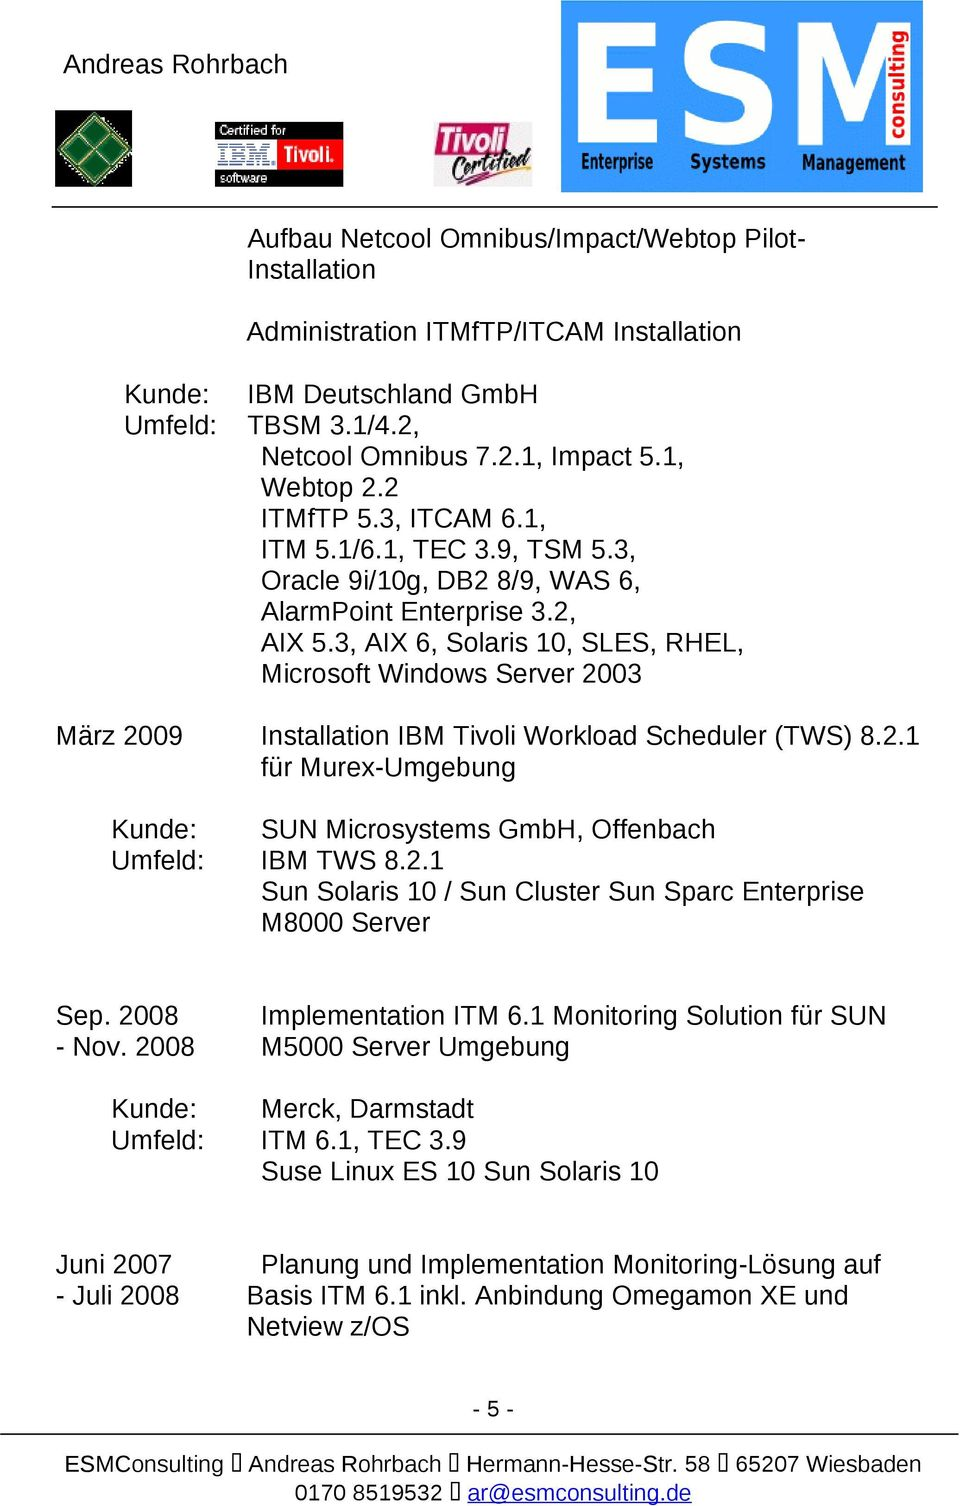 3, AIX 6, Solaris 10, SLES, RHEL, Microsoft Windows Server 2003 März 2009 Installation IBM Tivoli Workload Scheduler (TWS) 8.2.1 für Murex-Umgebung SUN Microsystems GmbH, Offenbach IBM TWS 8.2.1 Sun Solaris 10 / Sun Cluster Sun Sparc Enterprise M8000 Server Sep.